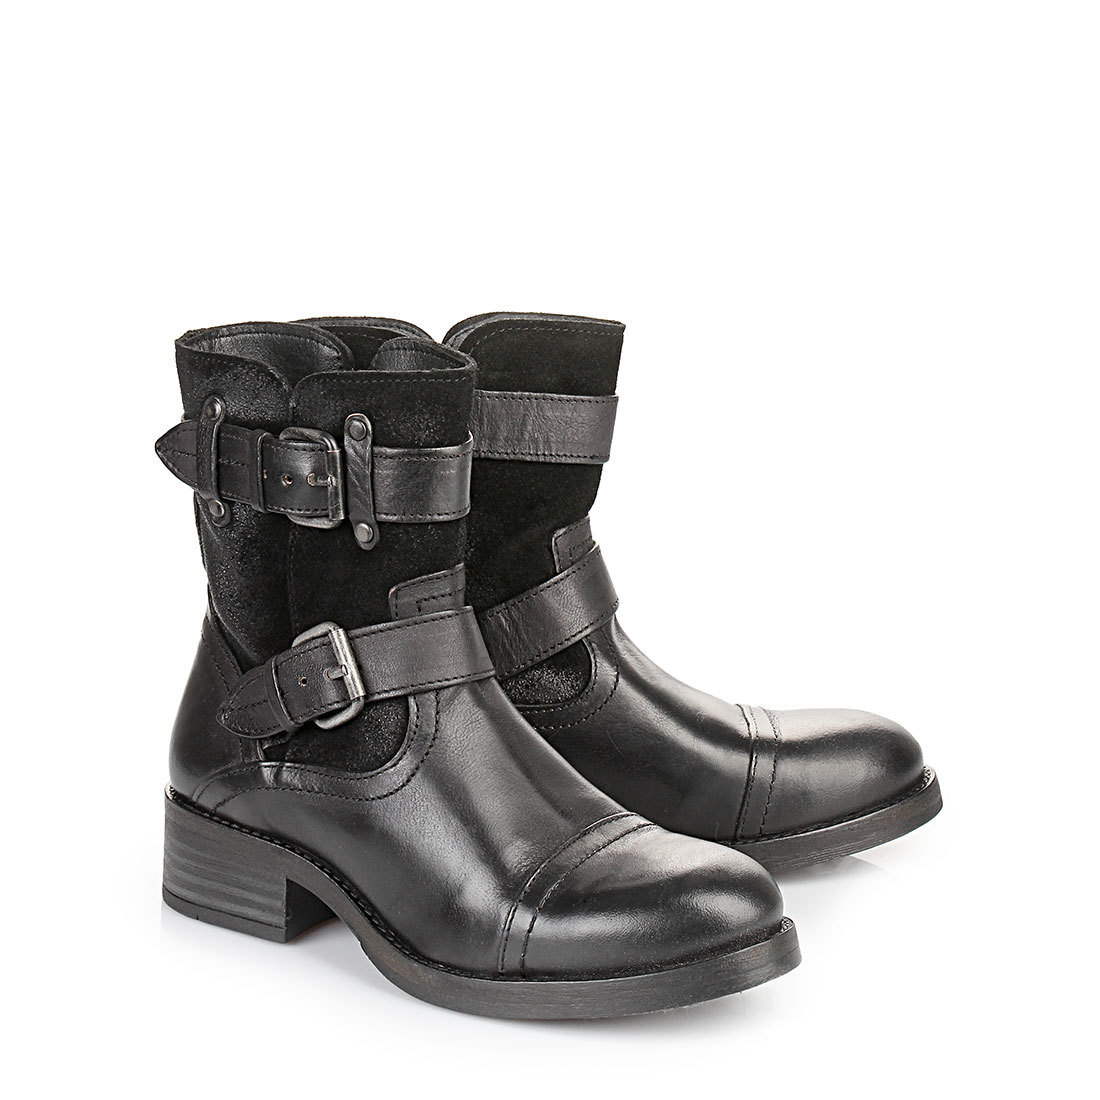 buffalo biker boots in schwarz aus leder und veloursleder. Black Bedroom Furniture Sets. Home Design Ideas